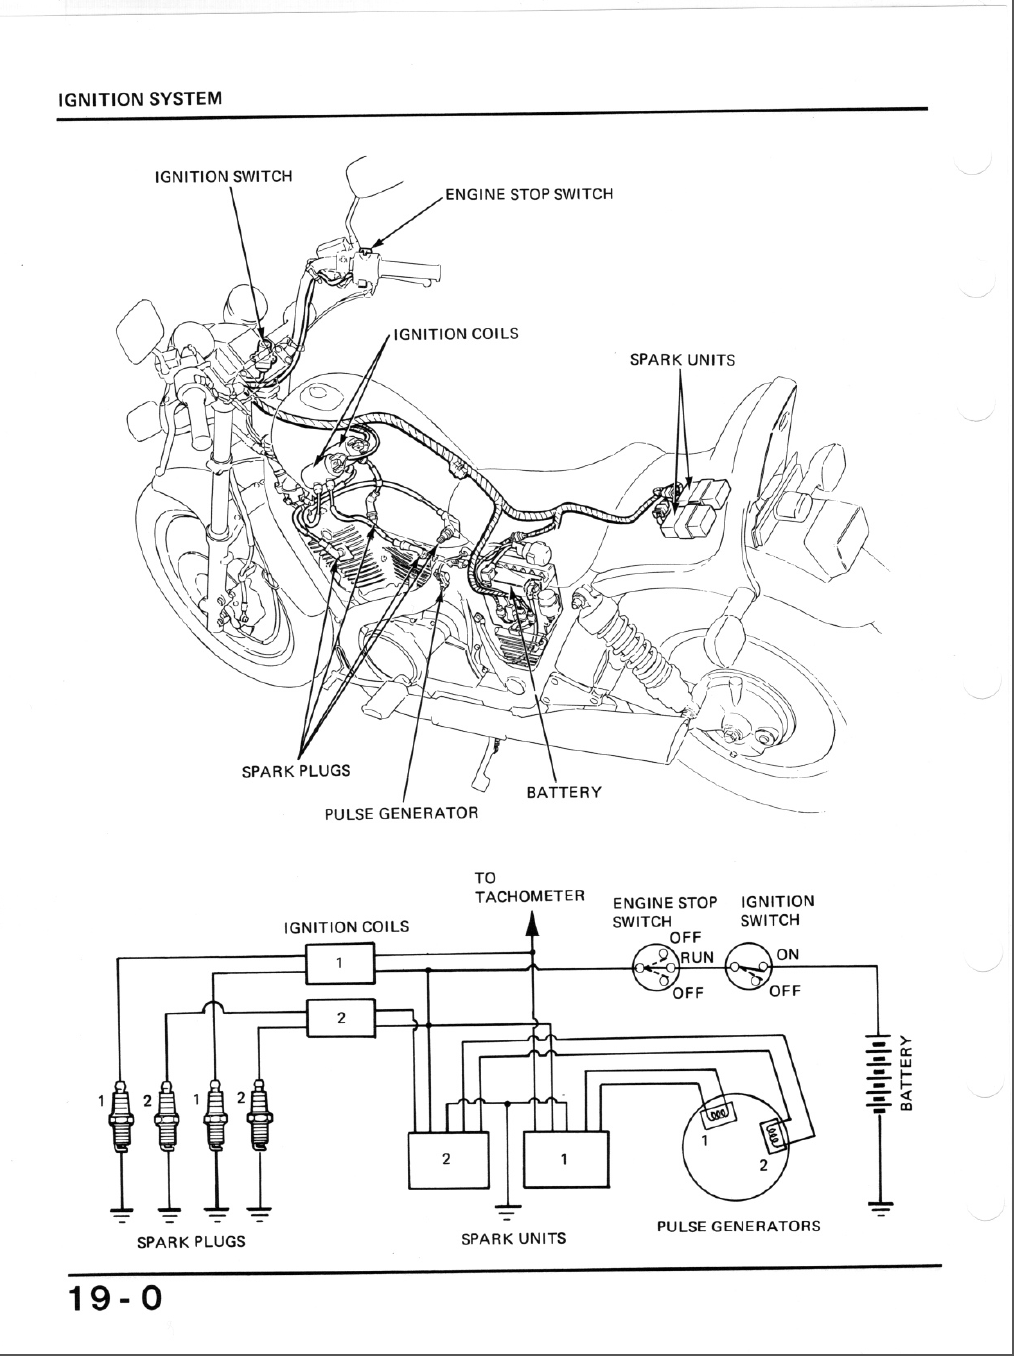 9267d1409799693 1984 honda shadow 700 ignition system 1984 honda shadow 700 2004 honda shadow 600 wiring diagram at alyssarenee.co